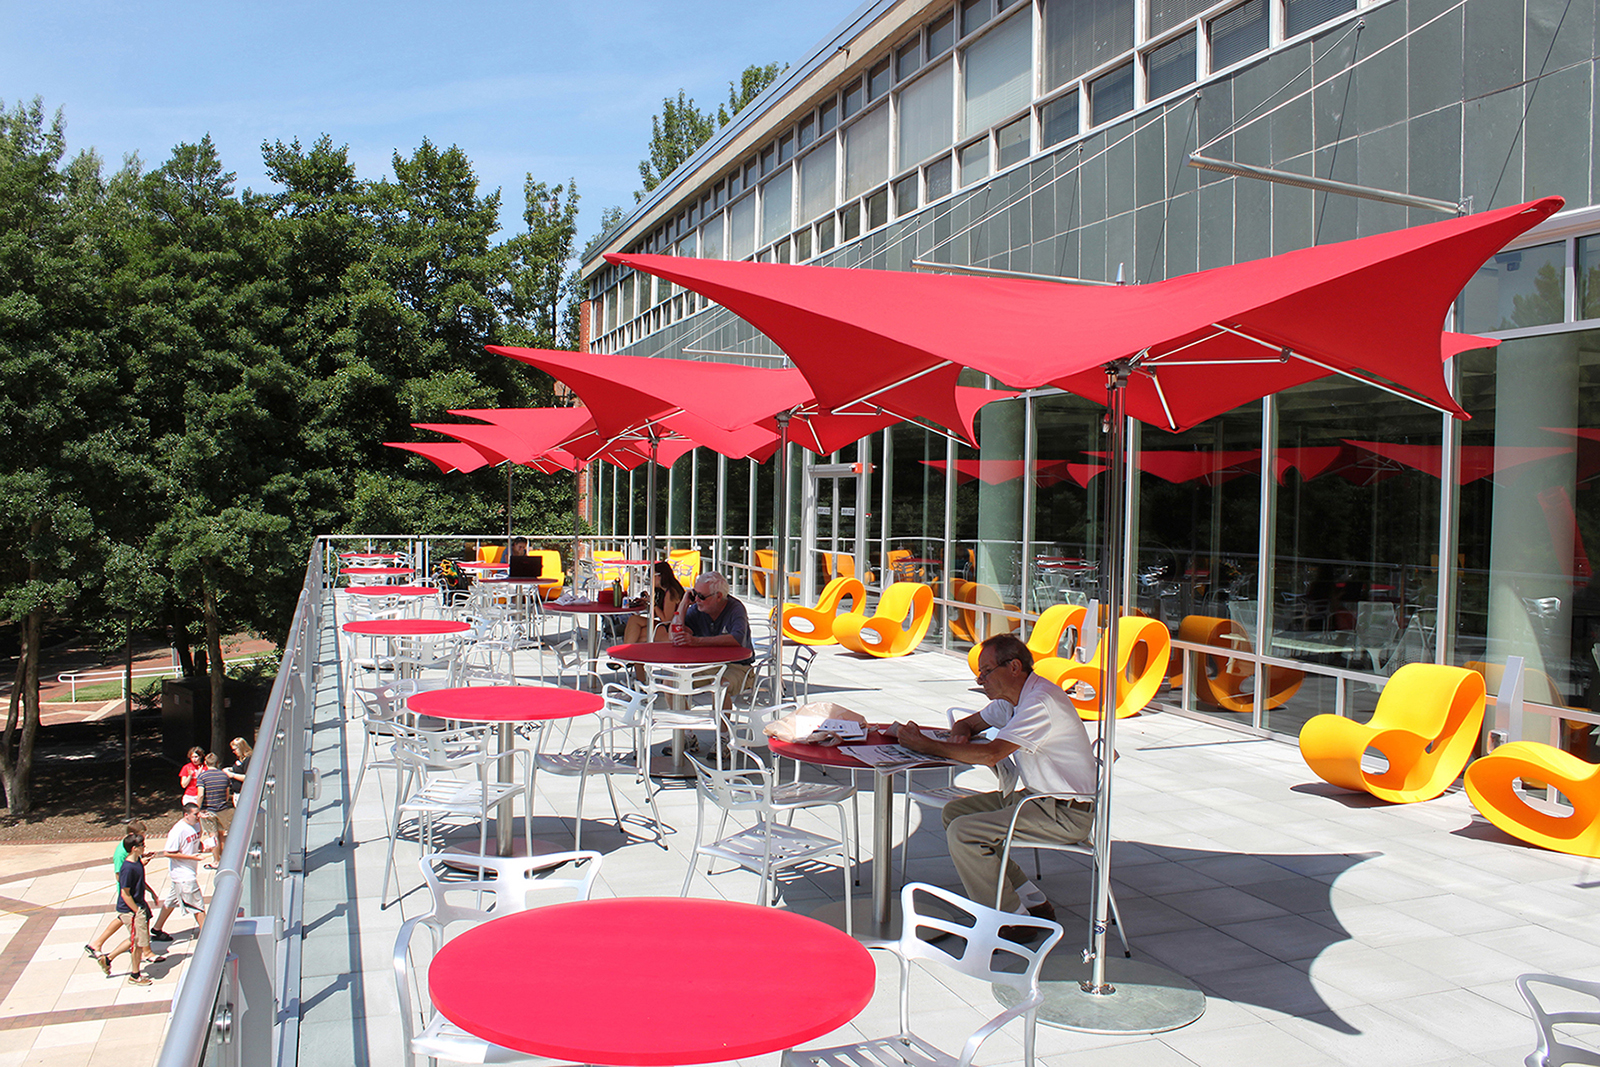 Students work at tables under umbrellas on the terrace at DH Hill Library